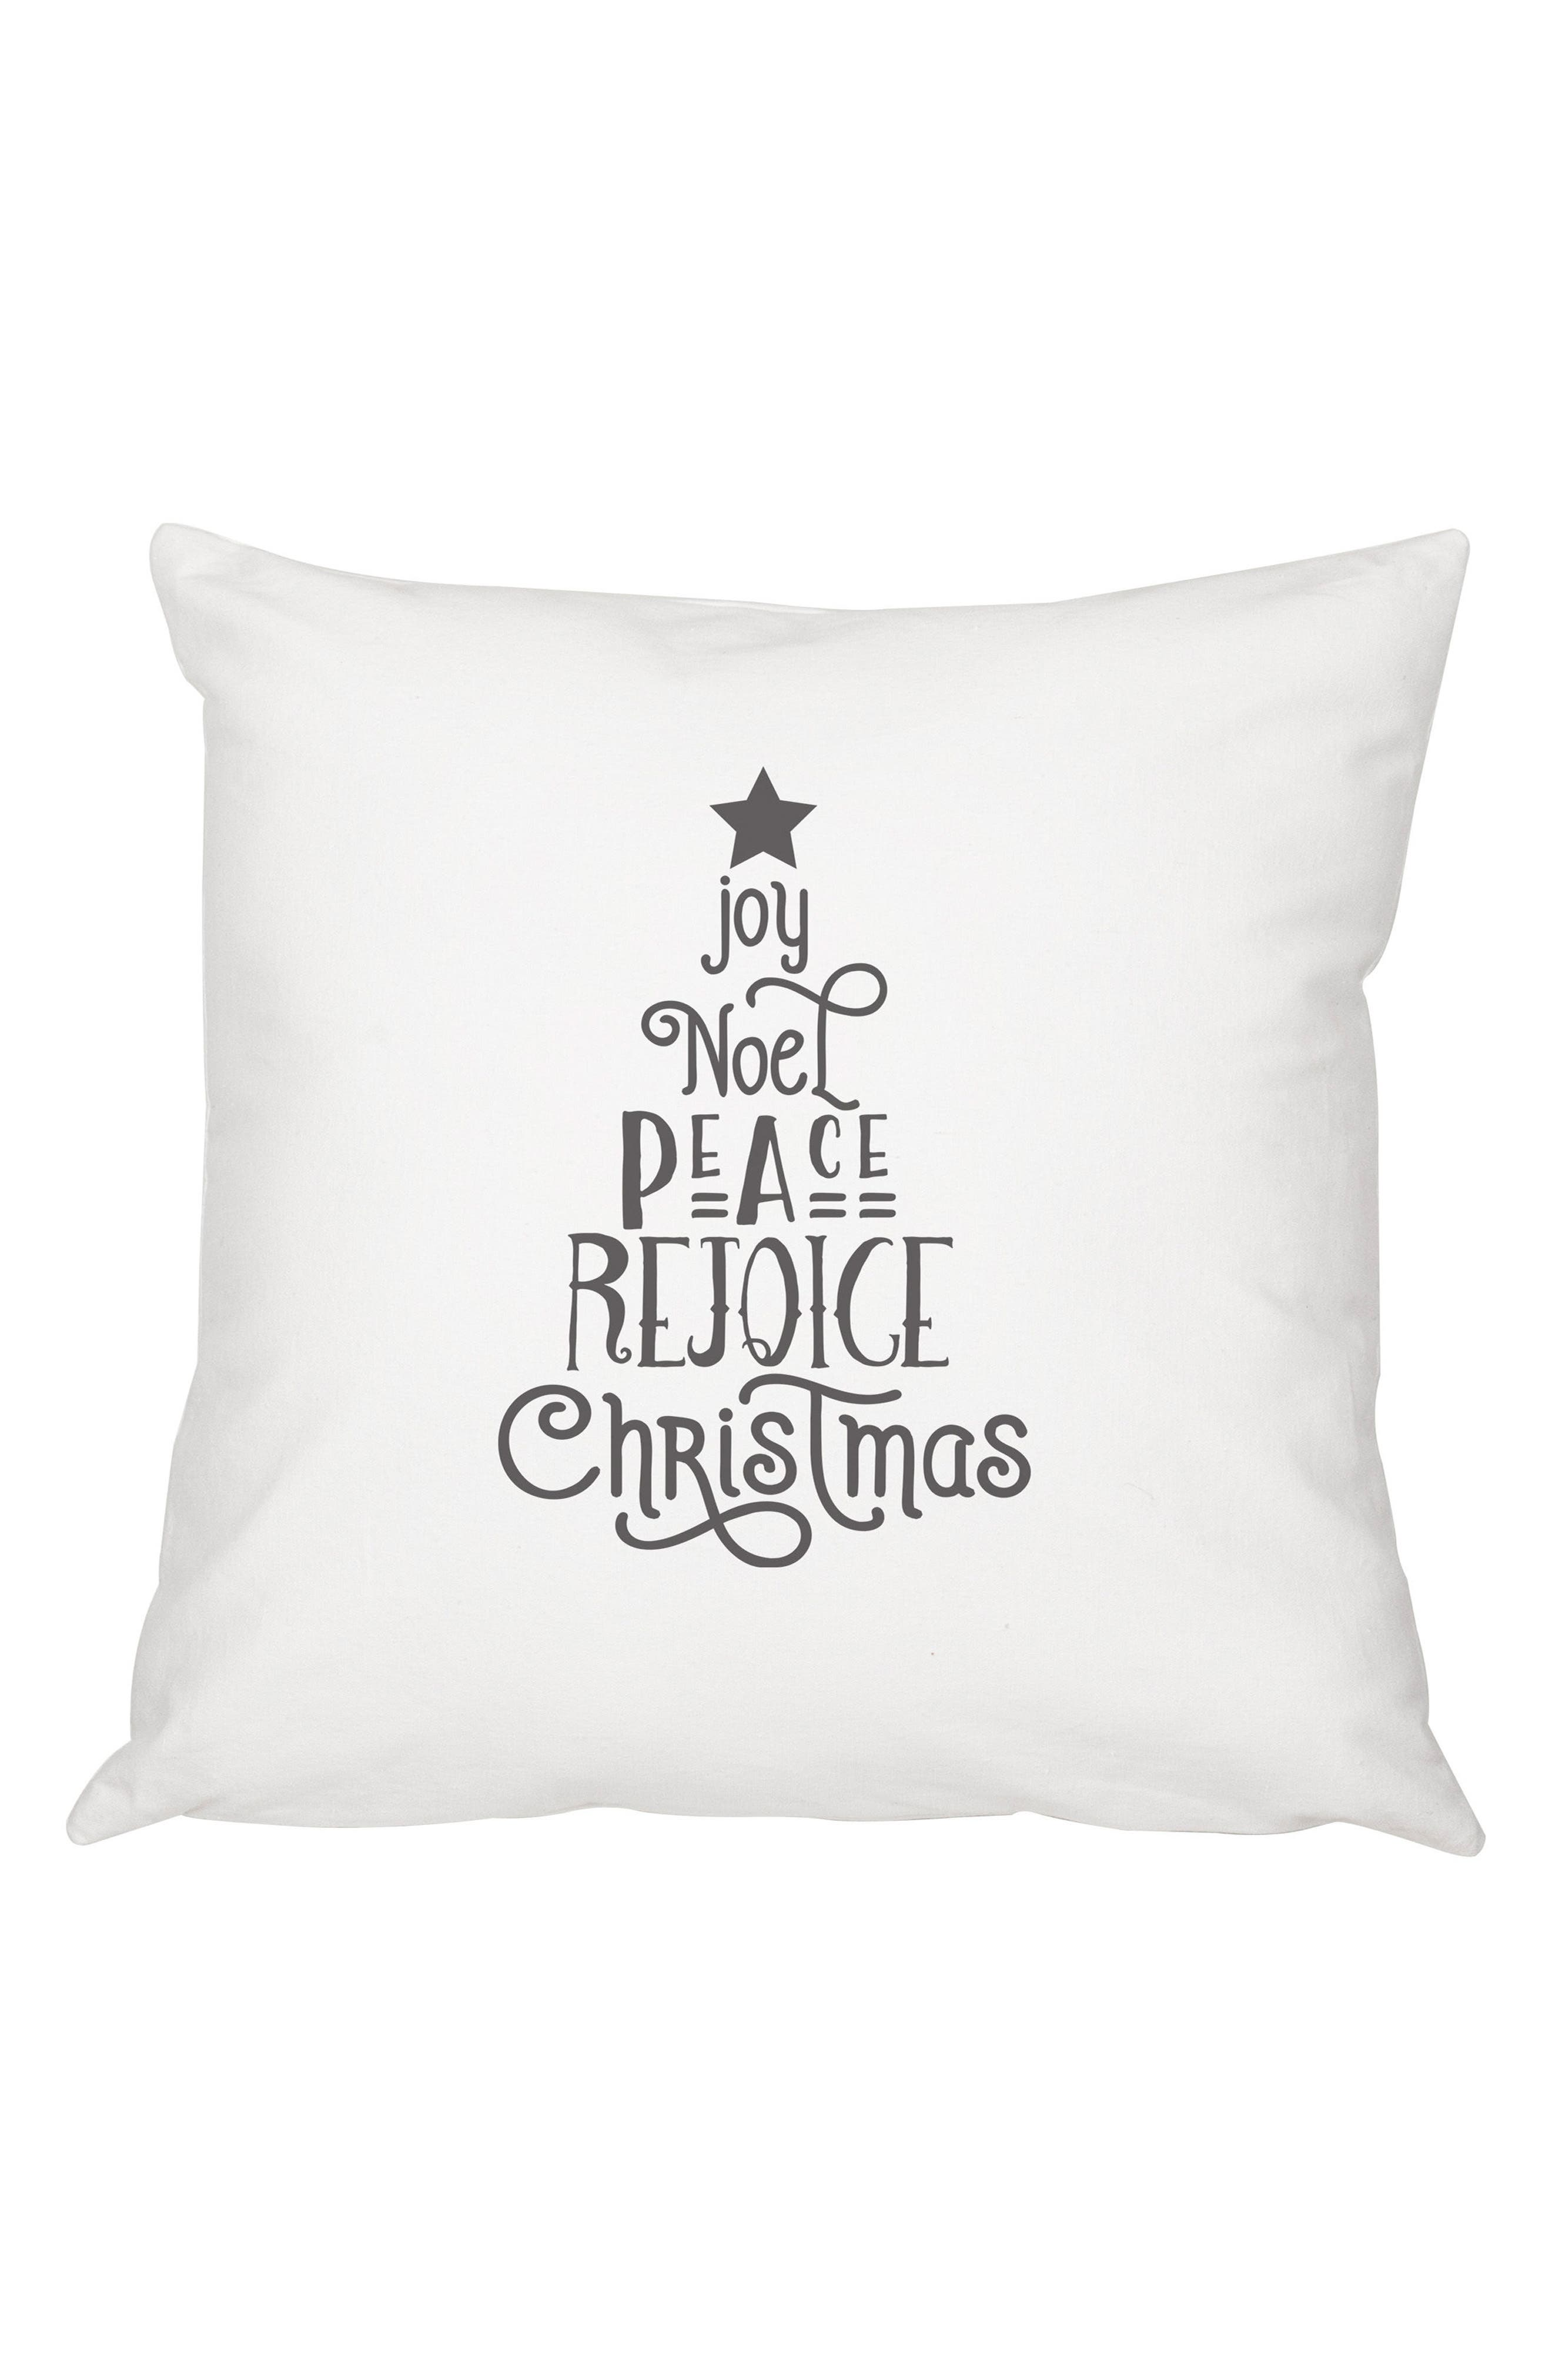 Christmas Tree Accent Pillow,                         Main,                         color, 020